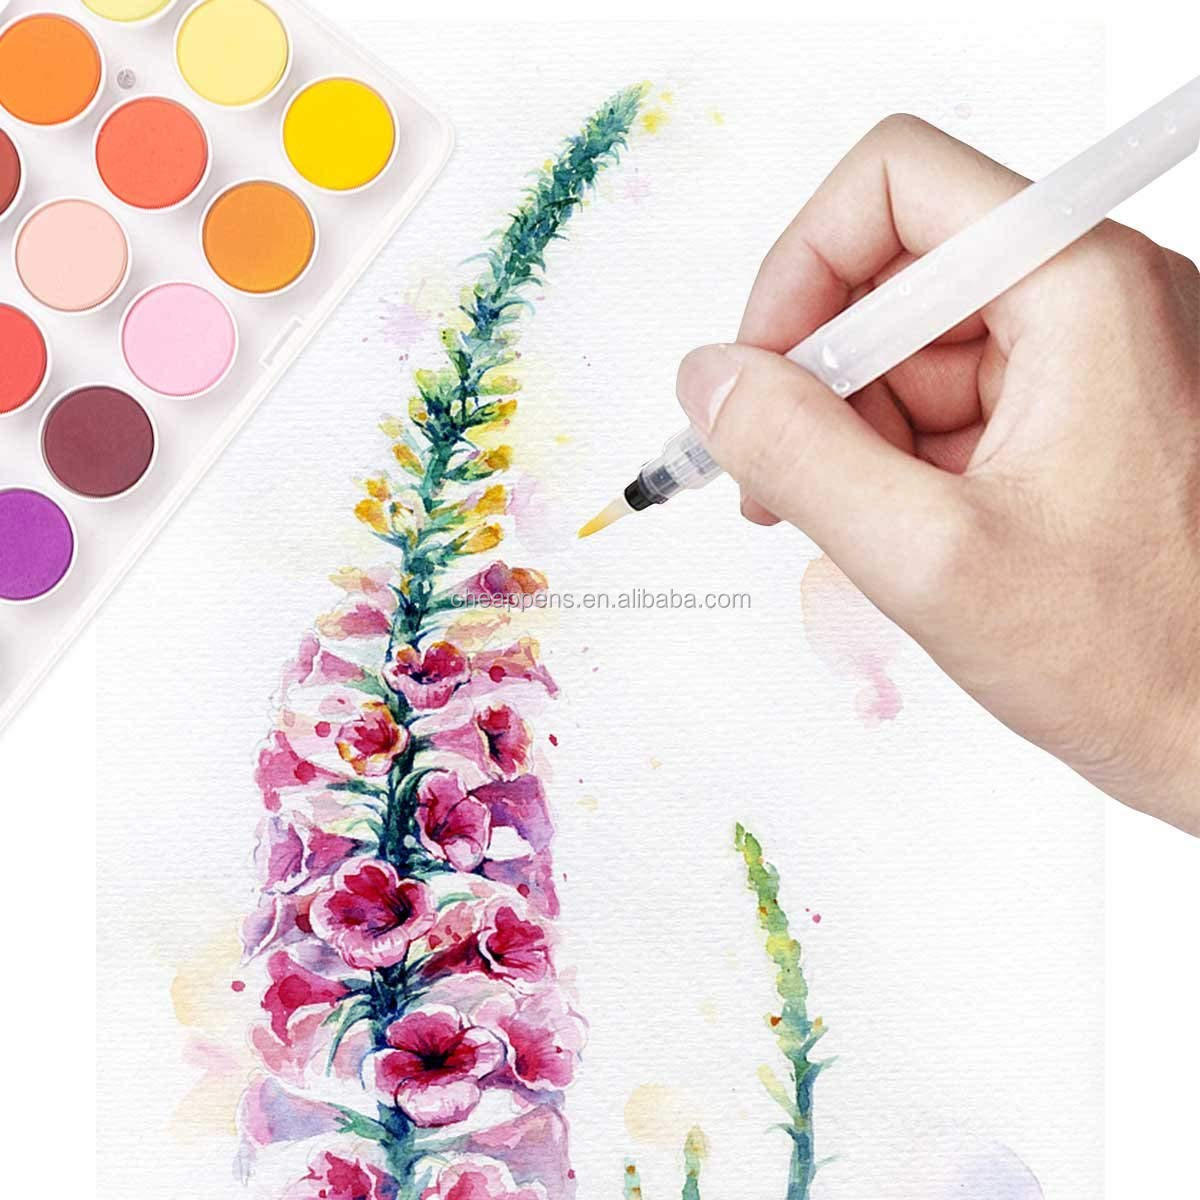 Water Coloring Brush Pen 6 Piece Refillable for Watercolor Painting, Calligraphy, Drawing, Blending